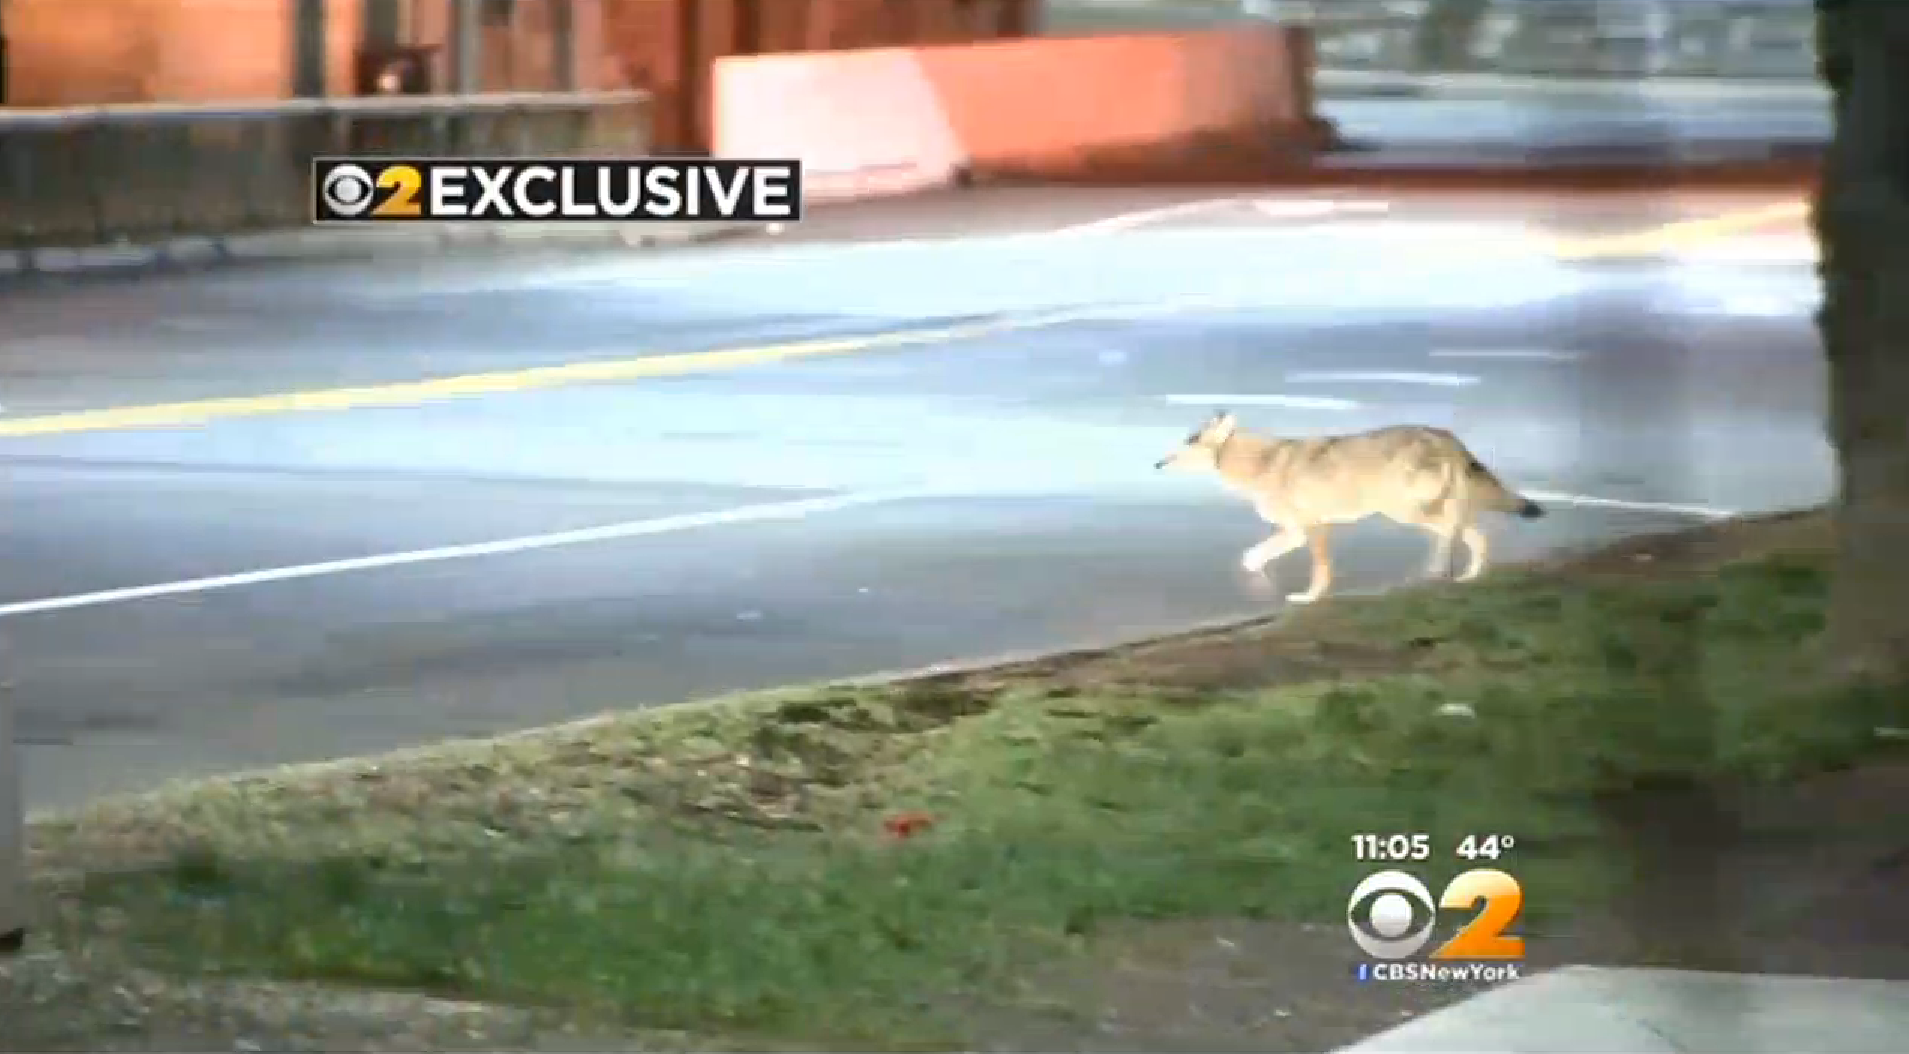 Bad Dogs: Coyote Evades NYC Police, Rabid Coyotes Found in New Jersey Neighborhood